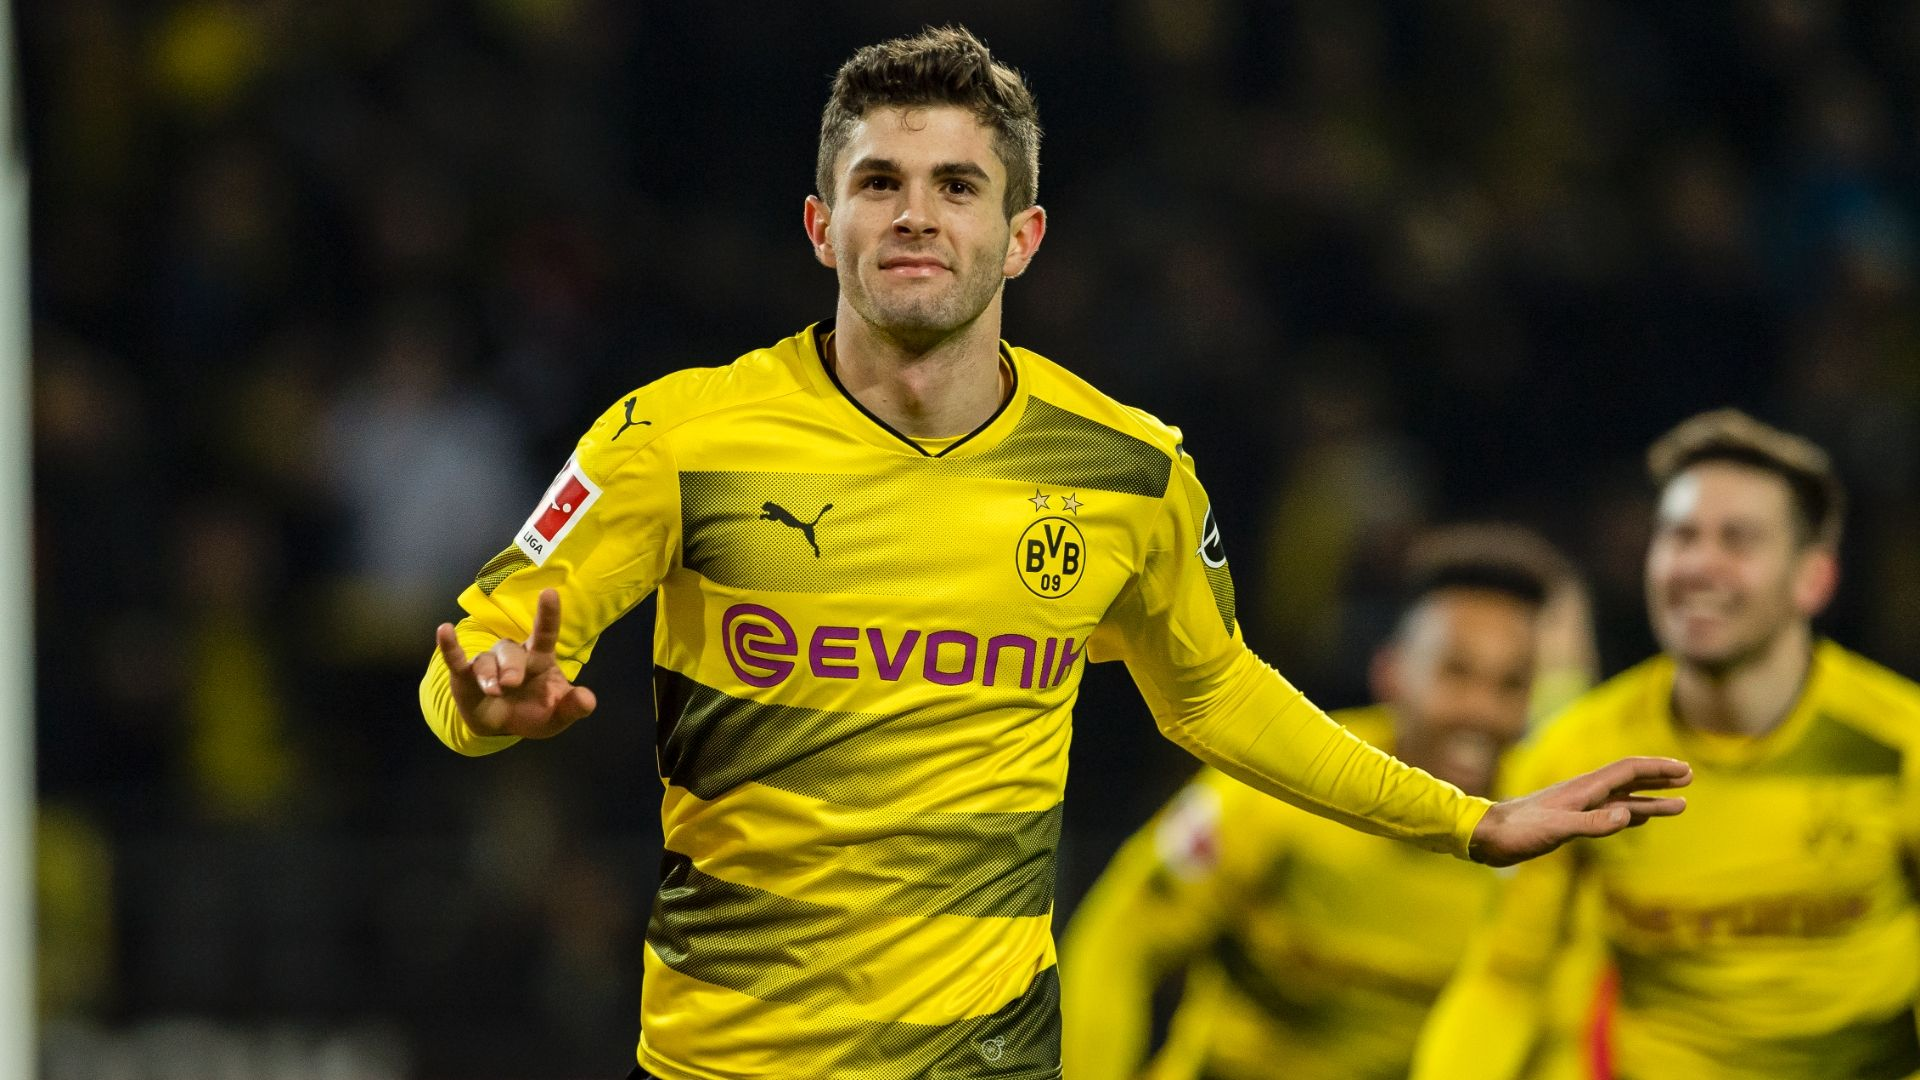 Premier League will have to wait for Pulisic